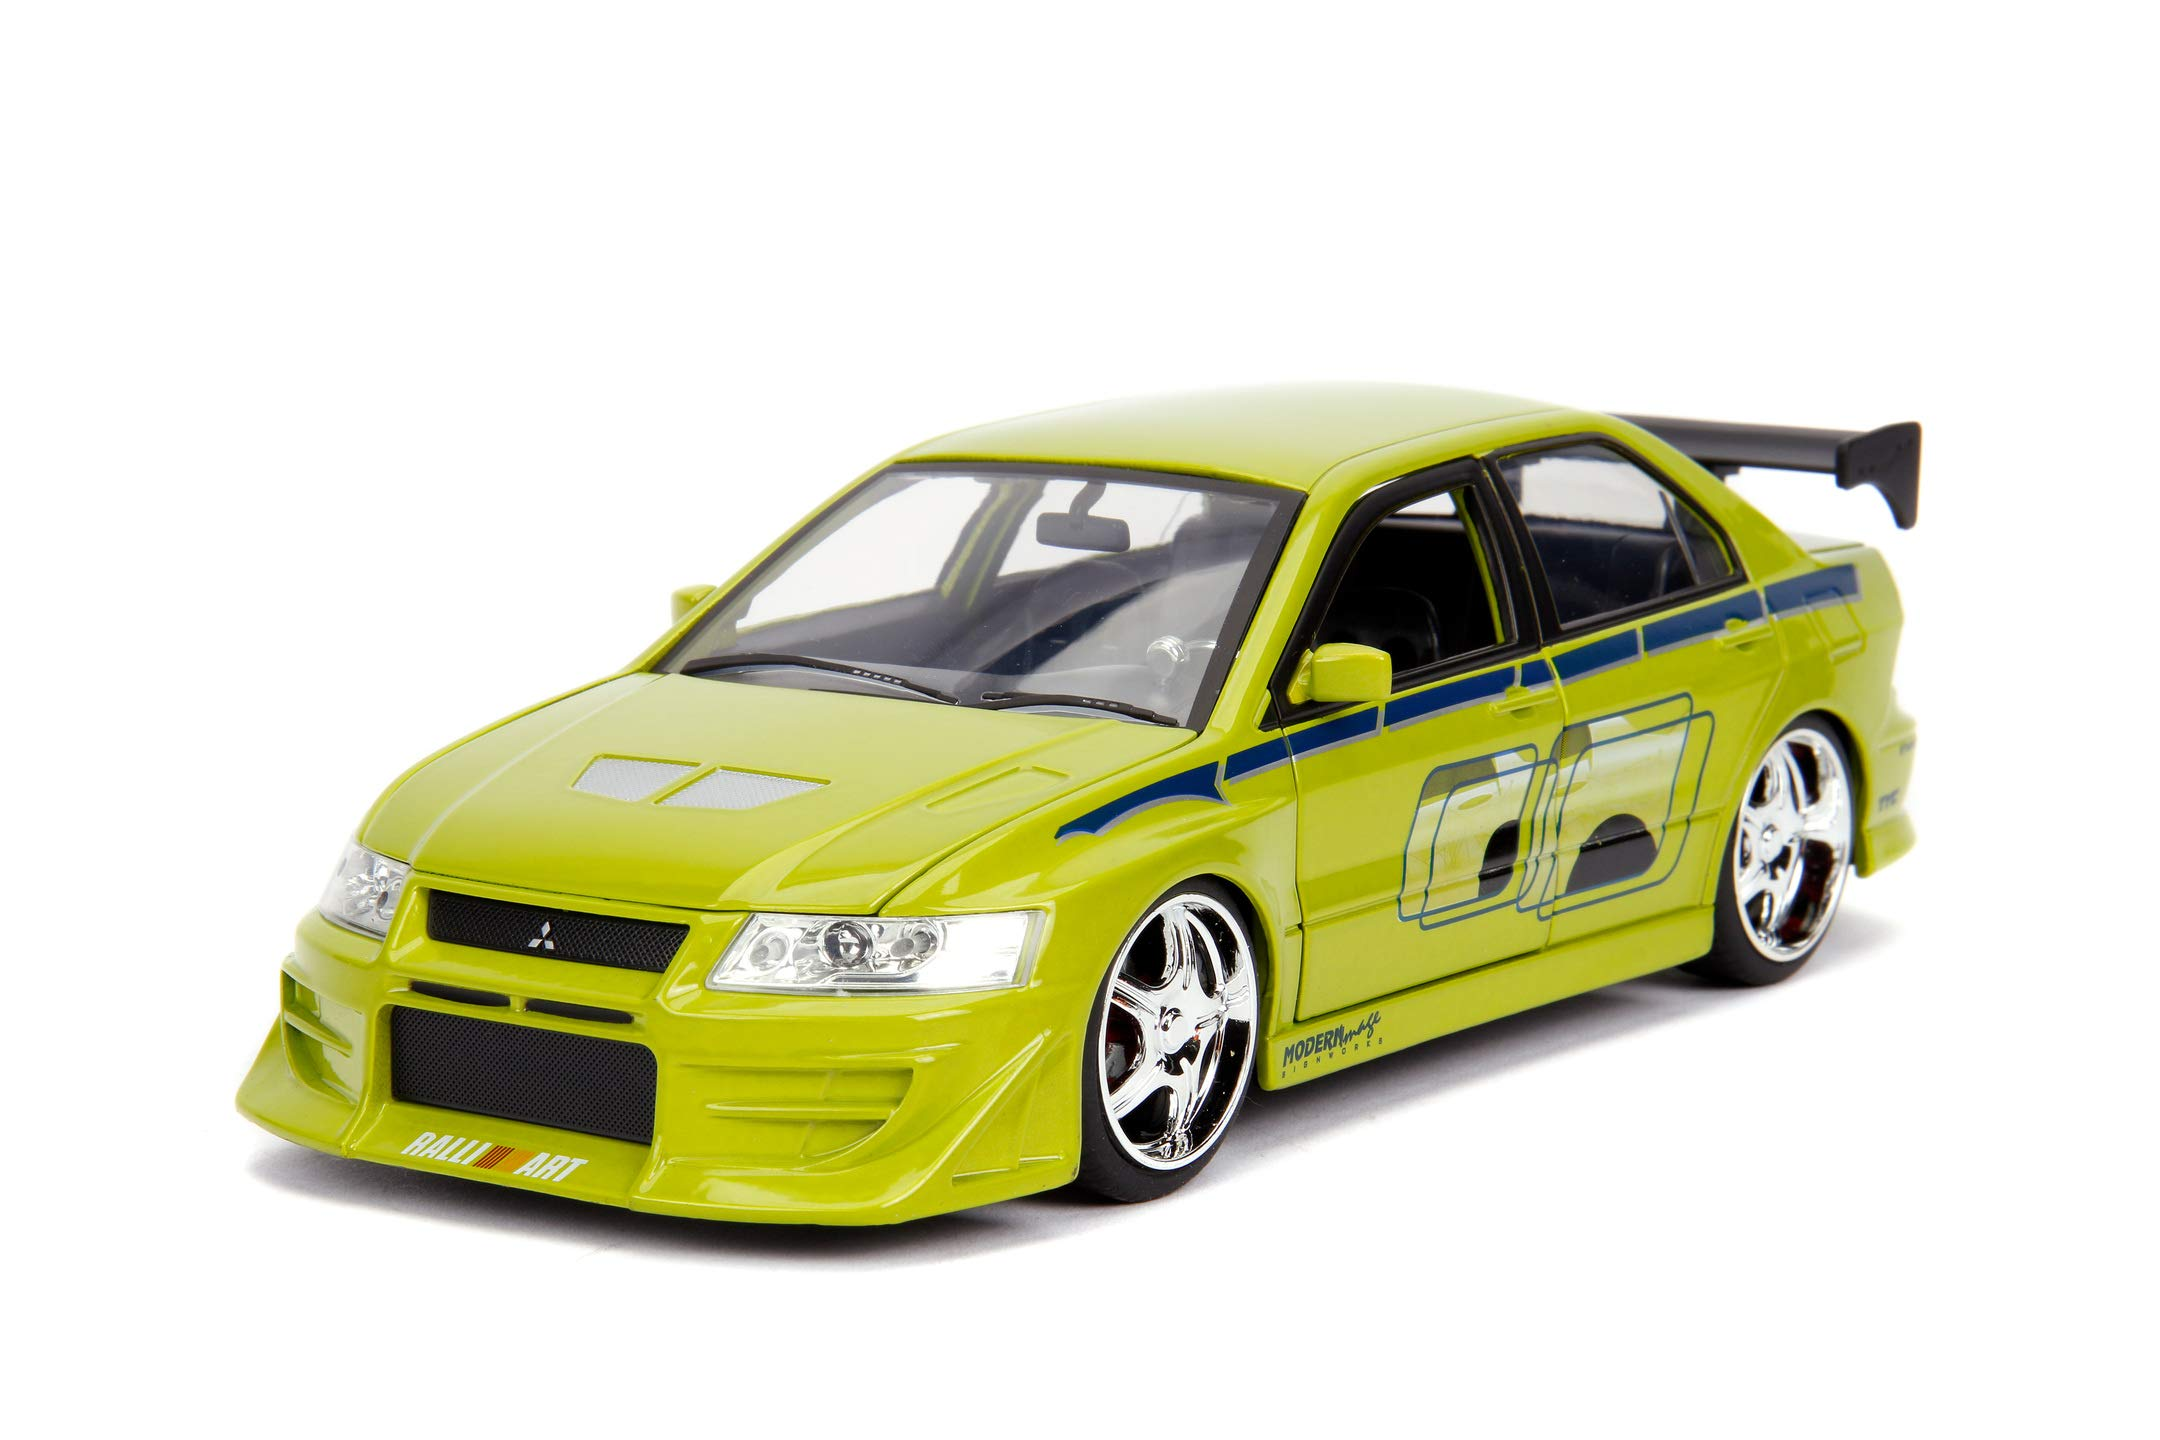 Jada Toys Fast & Furious 1:24 Brian's Mitsubishi Lancer Evolution VII Die-cast Car, Toys for Kids and Adults, Lime Green (99788)